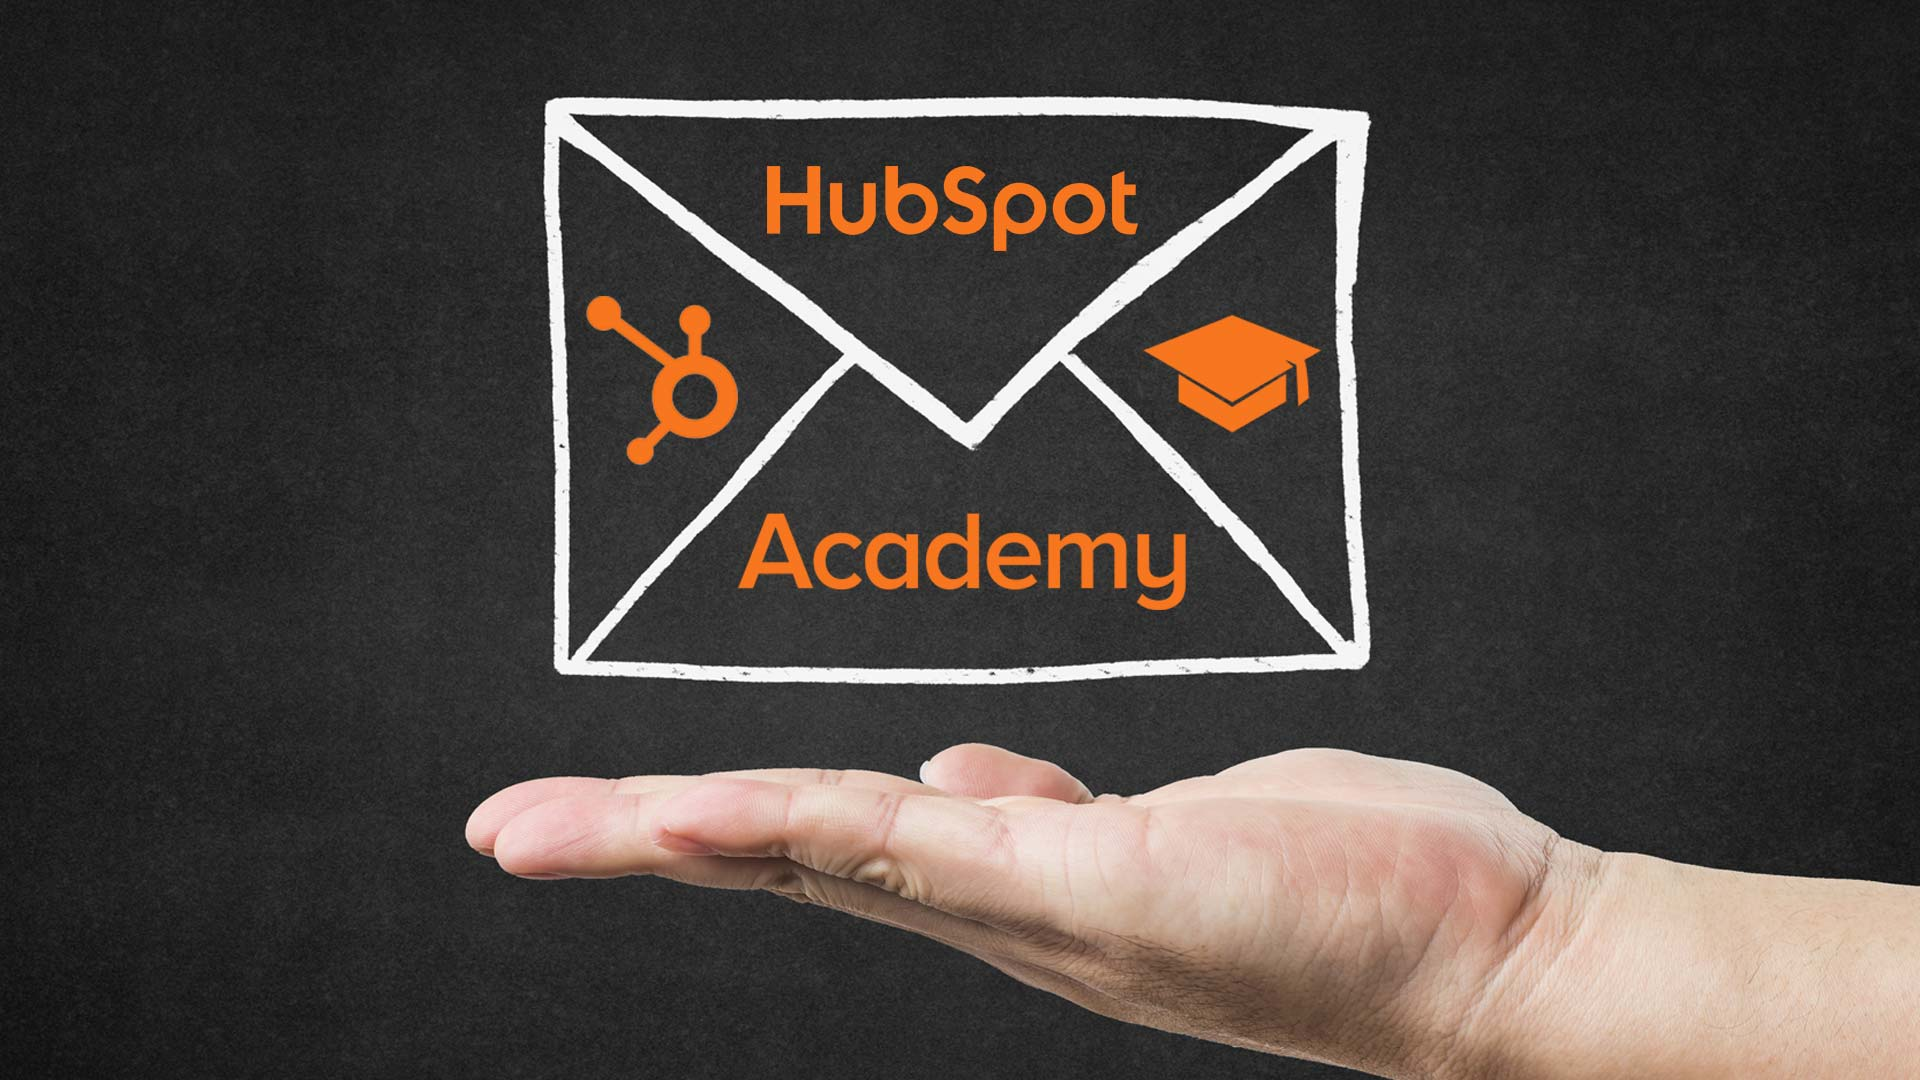 Consigli email marketing | Approfondisci con la HubSpot Academy